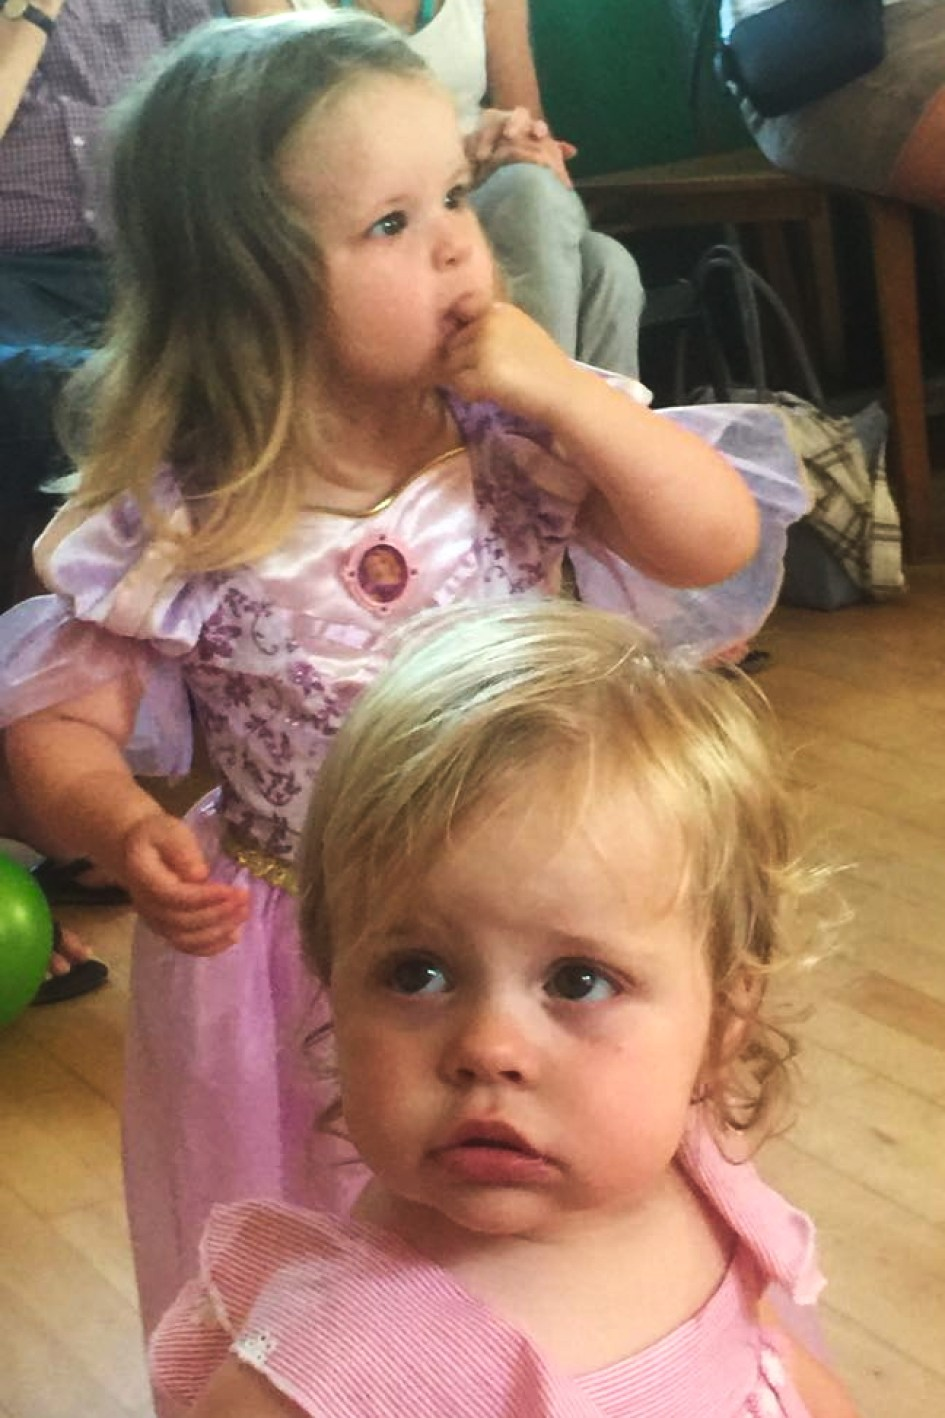 Two and one year old sisters at a party, dressed in pink